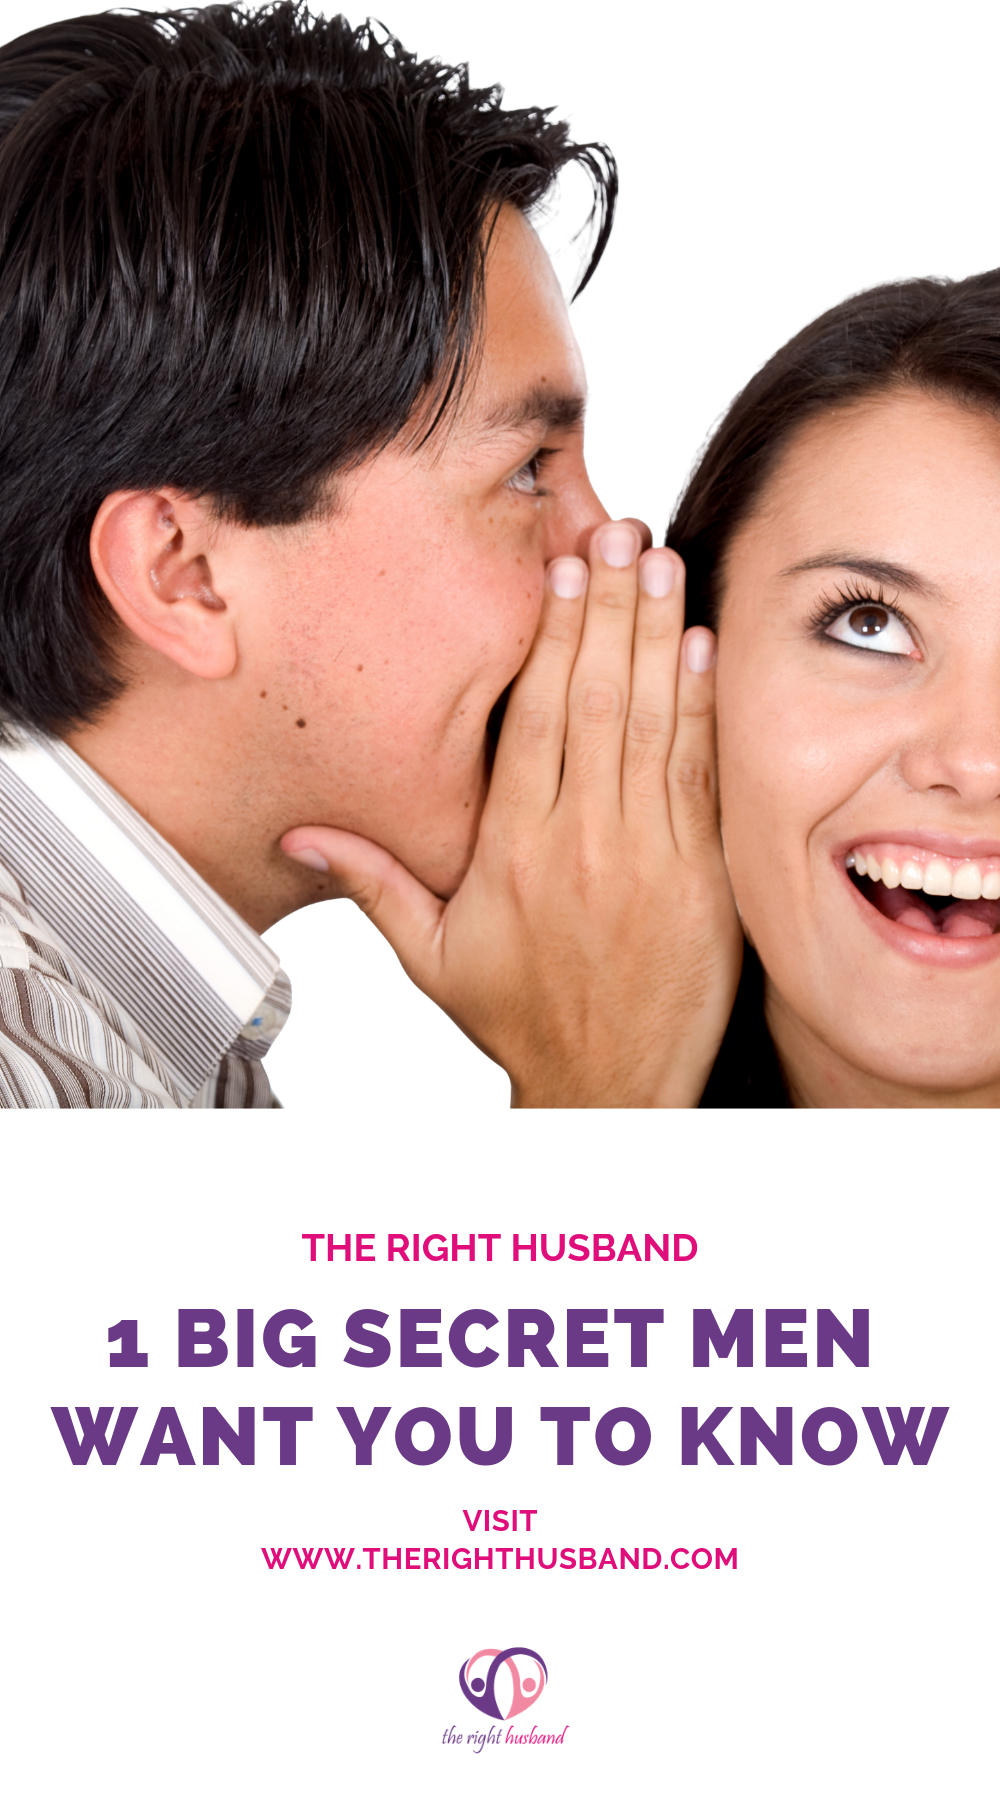 1000x1800 One big secret men want you to know 2